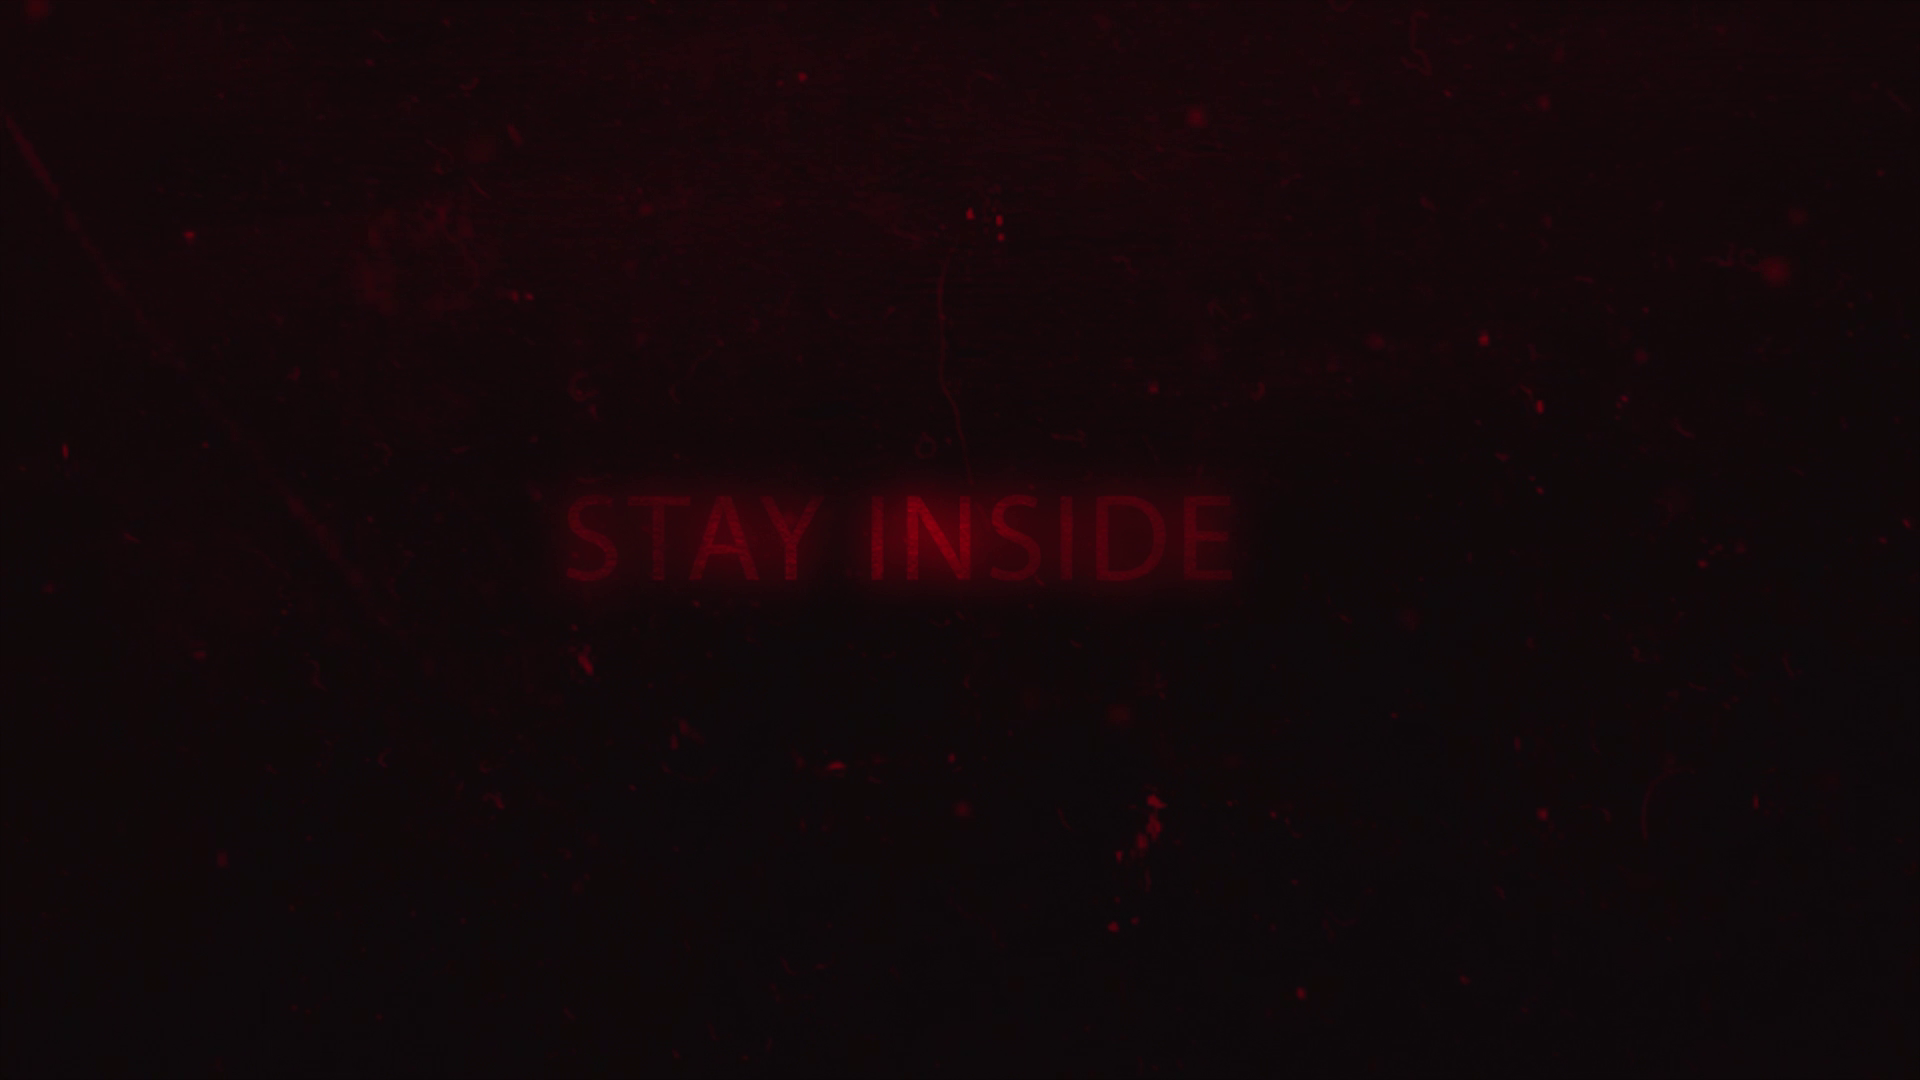 Title screen from the first trailer test screening.